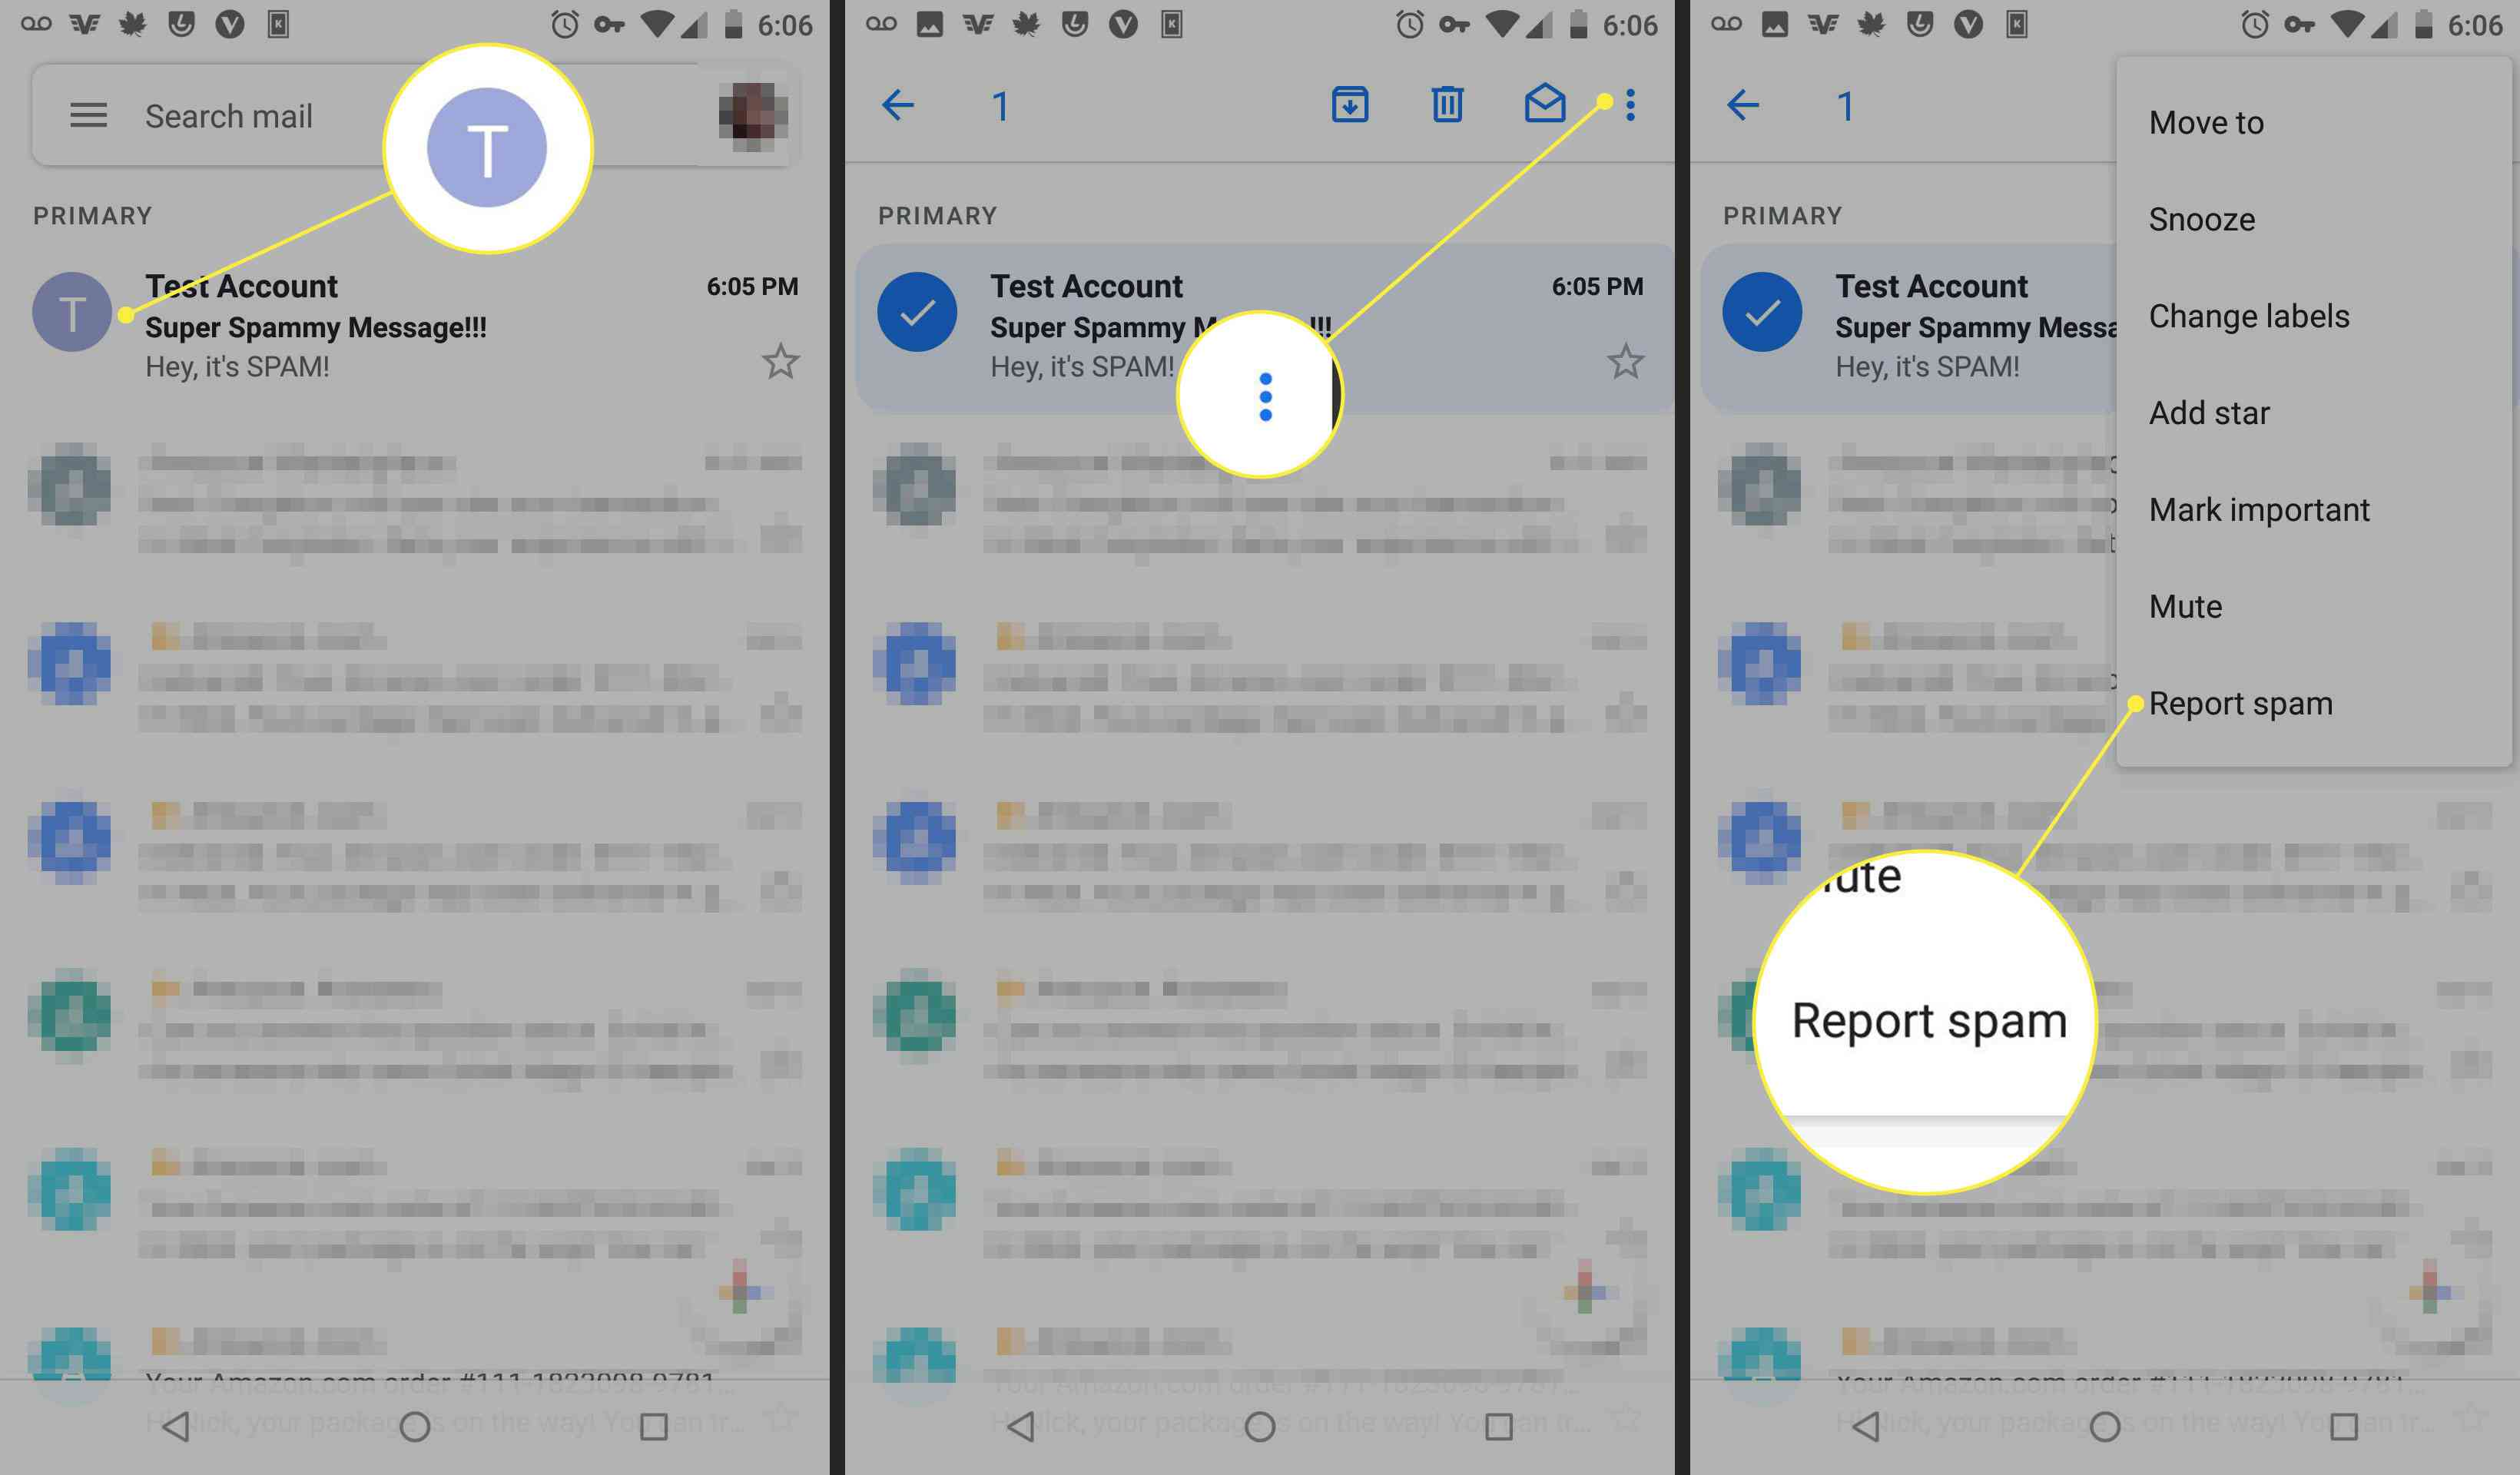 Screenshots of the Gmail app showing how to report an account as spam